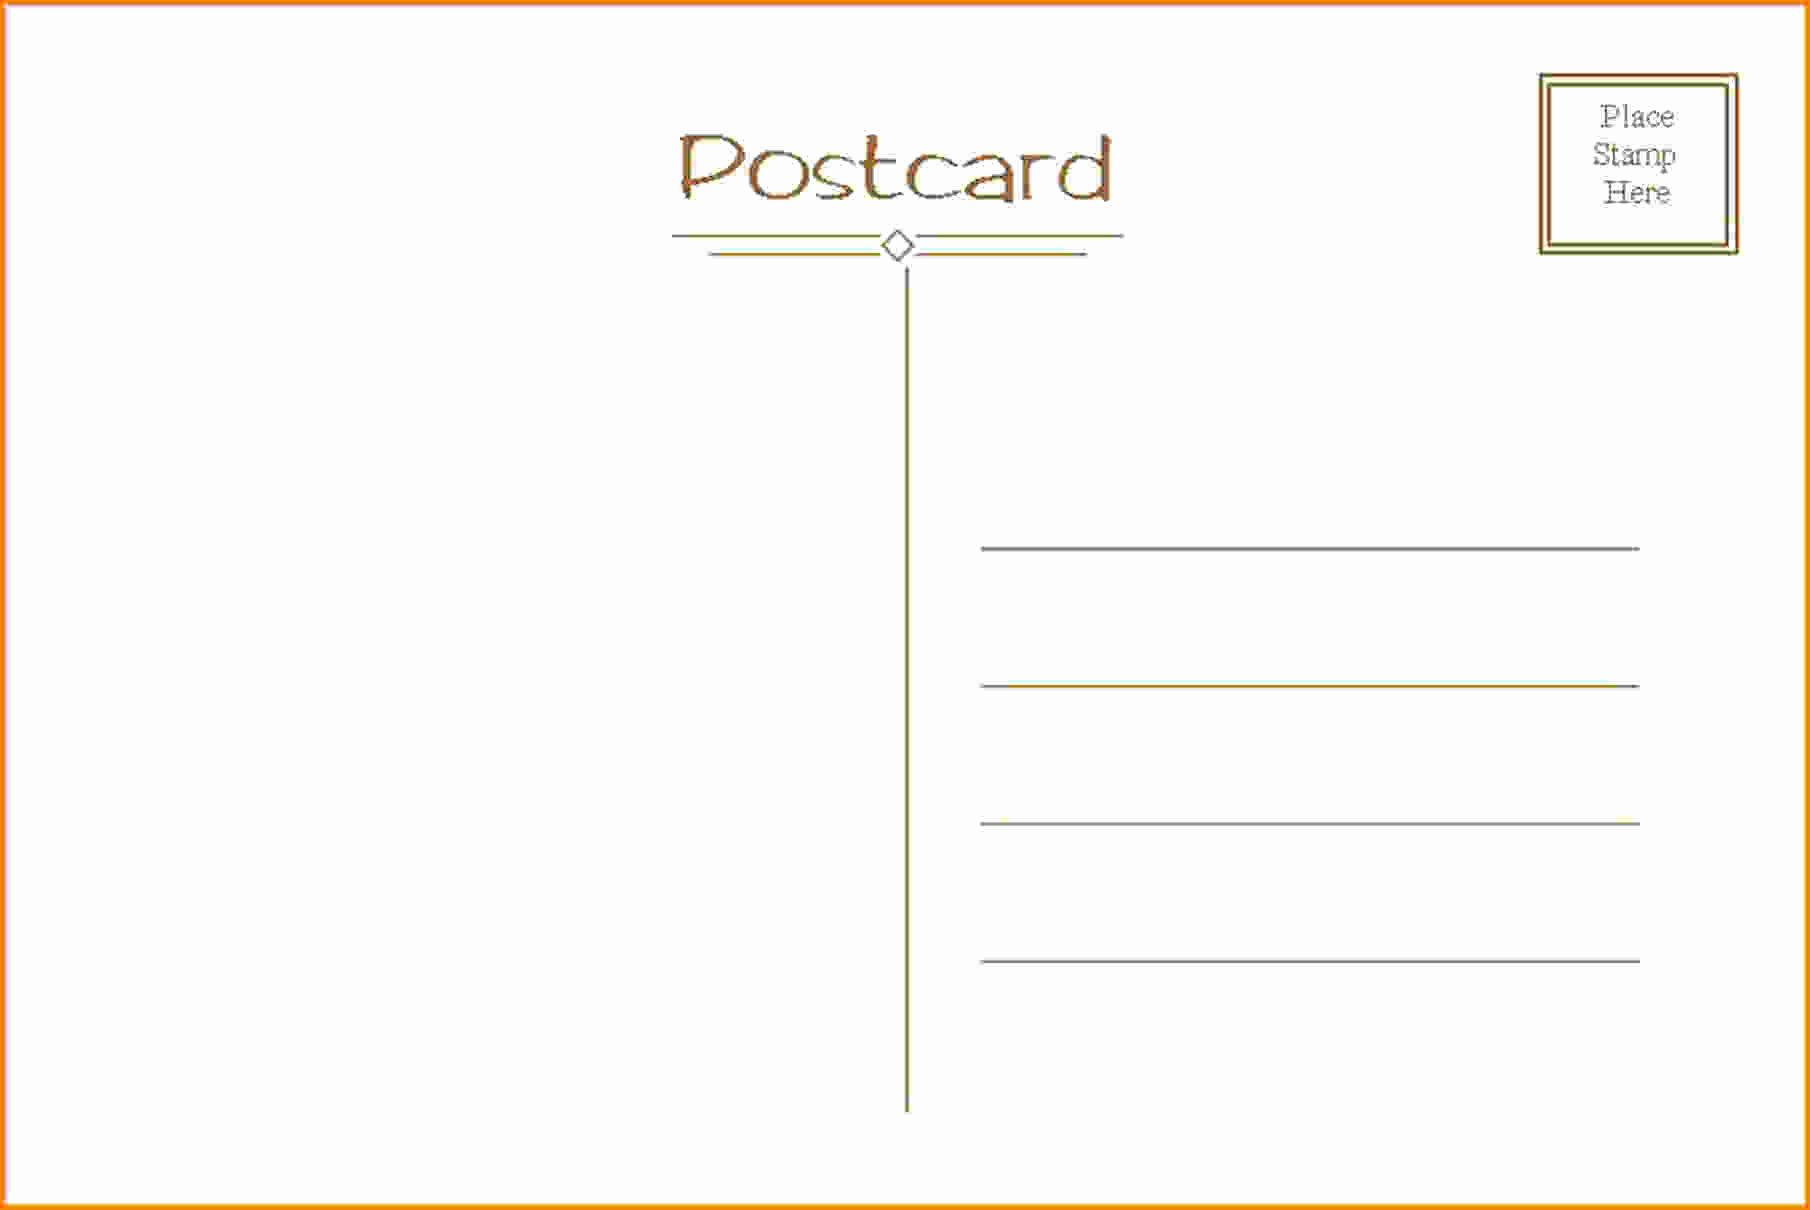 Free Printable Postcard Template Lovely Fresh Word Postcard Template Free Yourweek 86c718eca25e